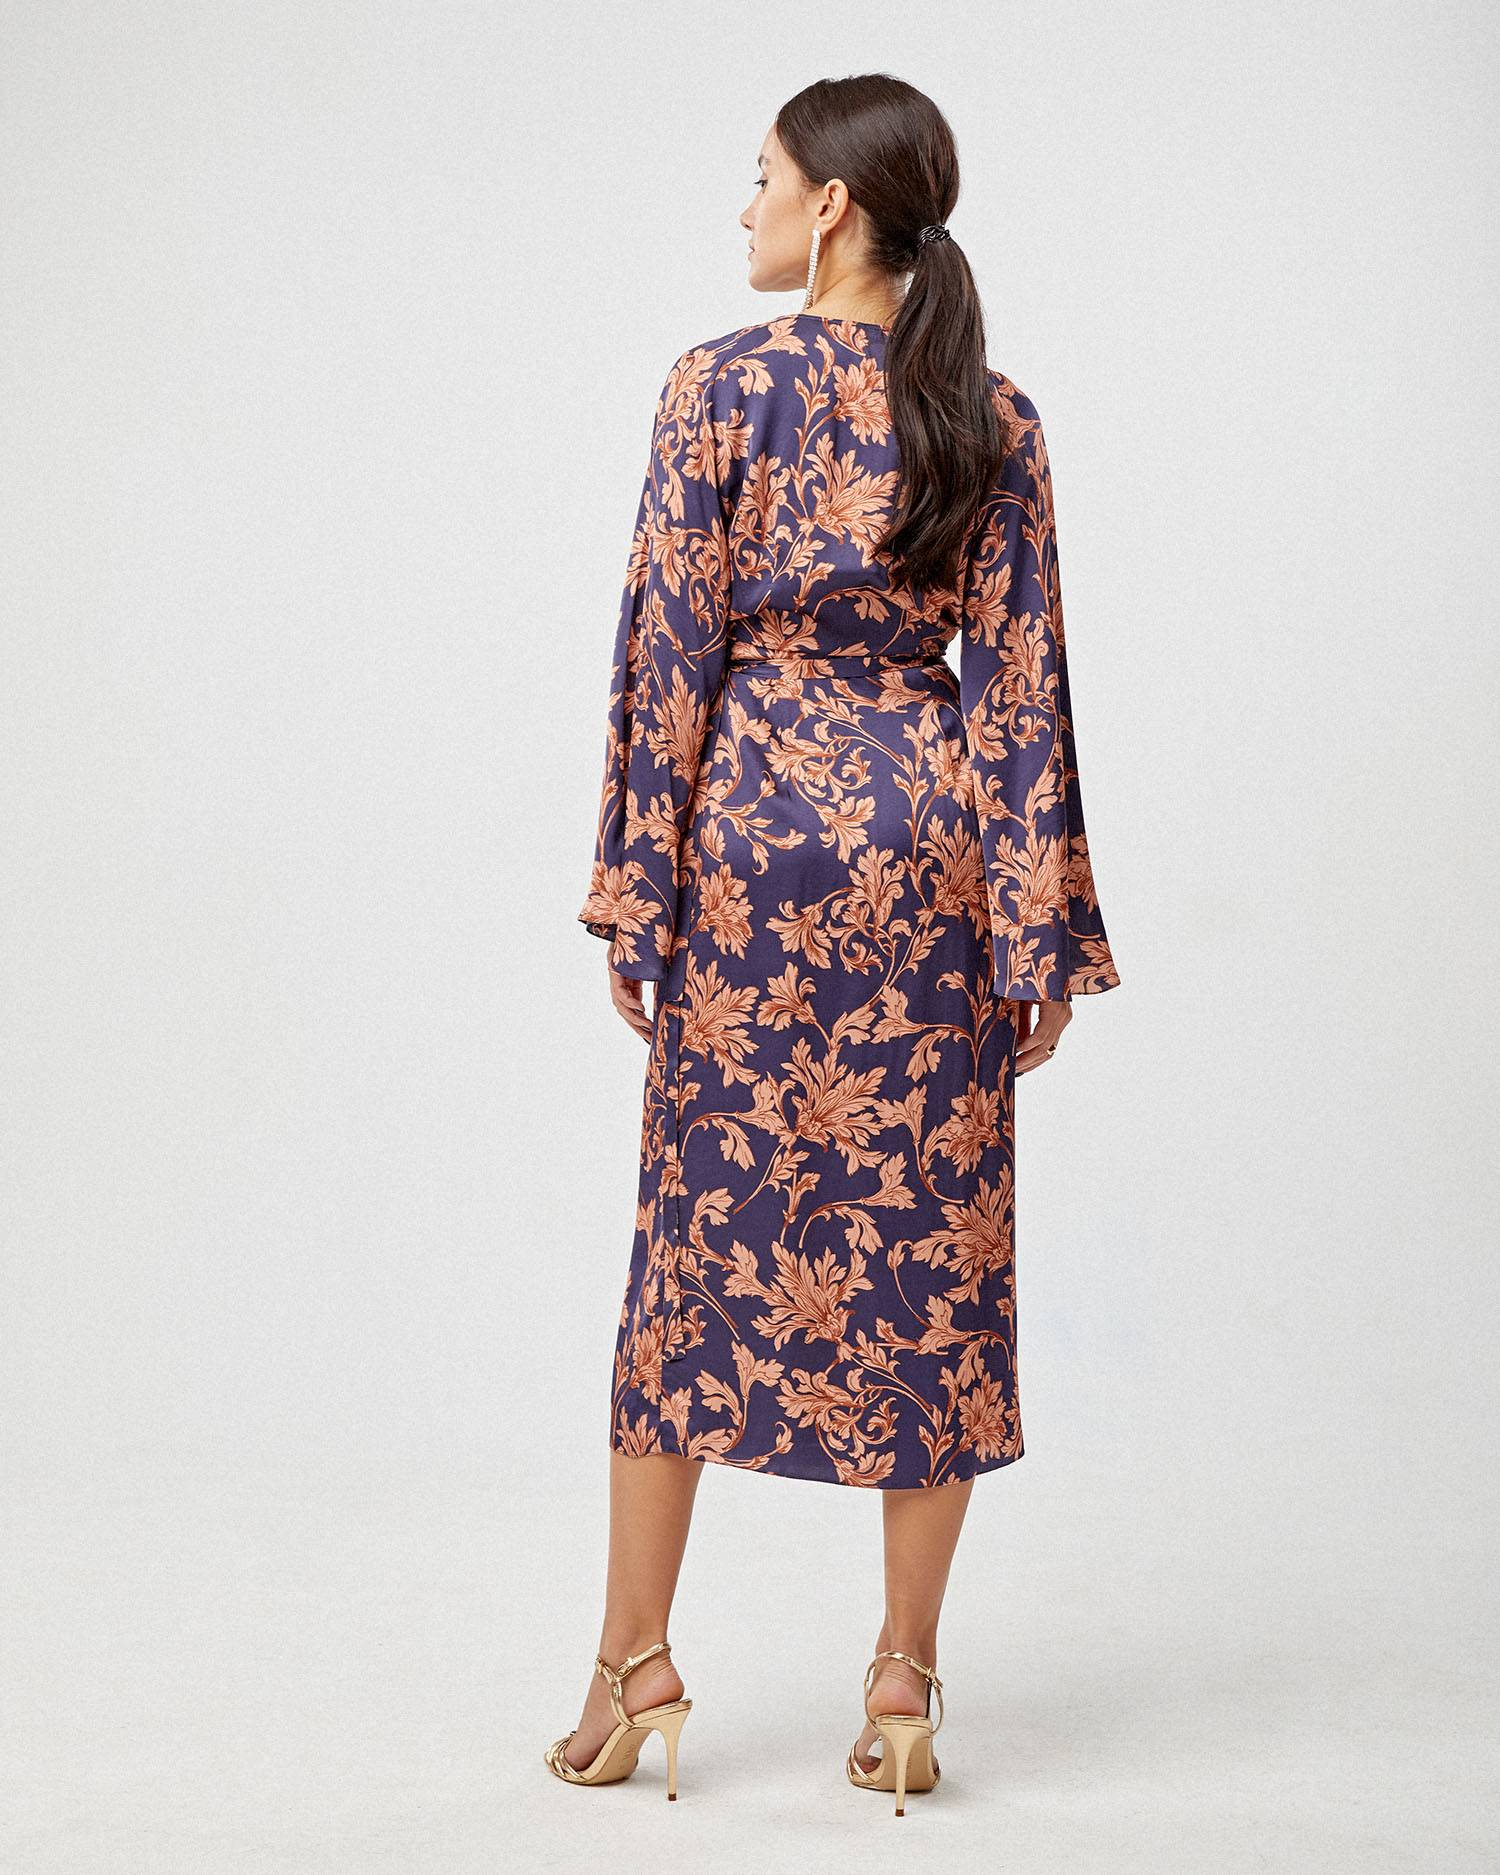 Floral printed robe dress